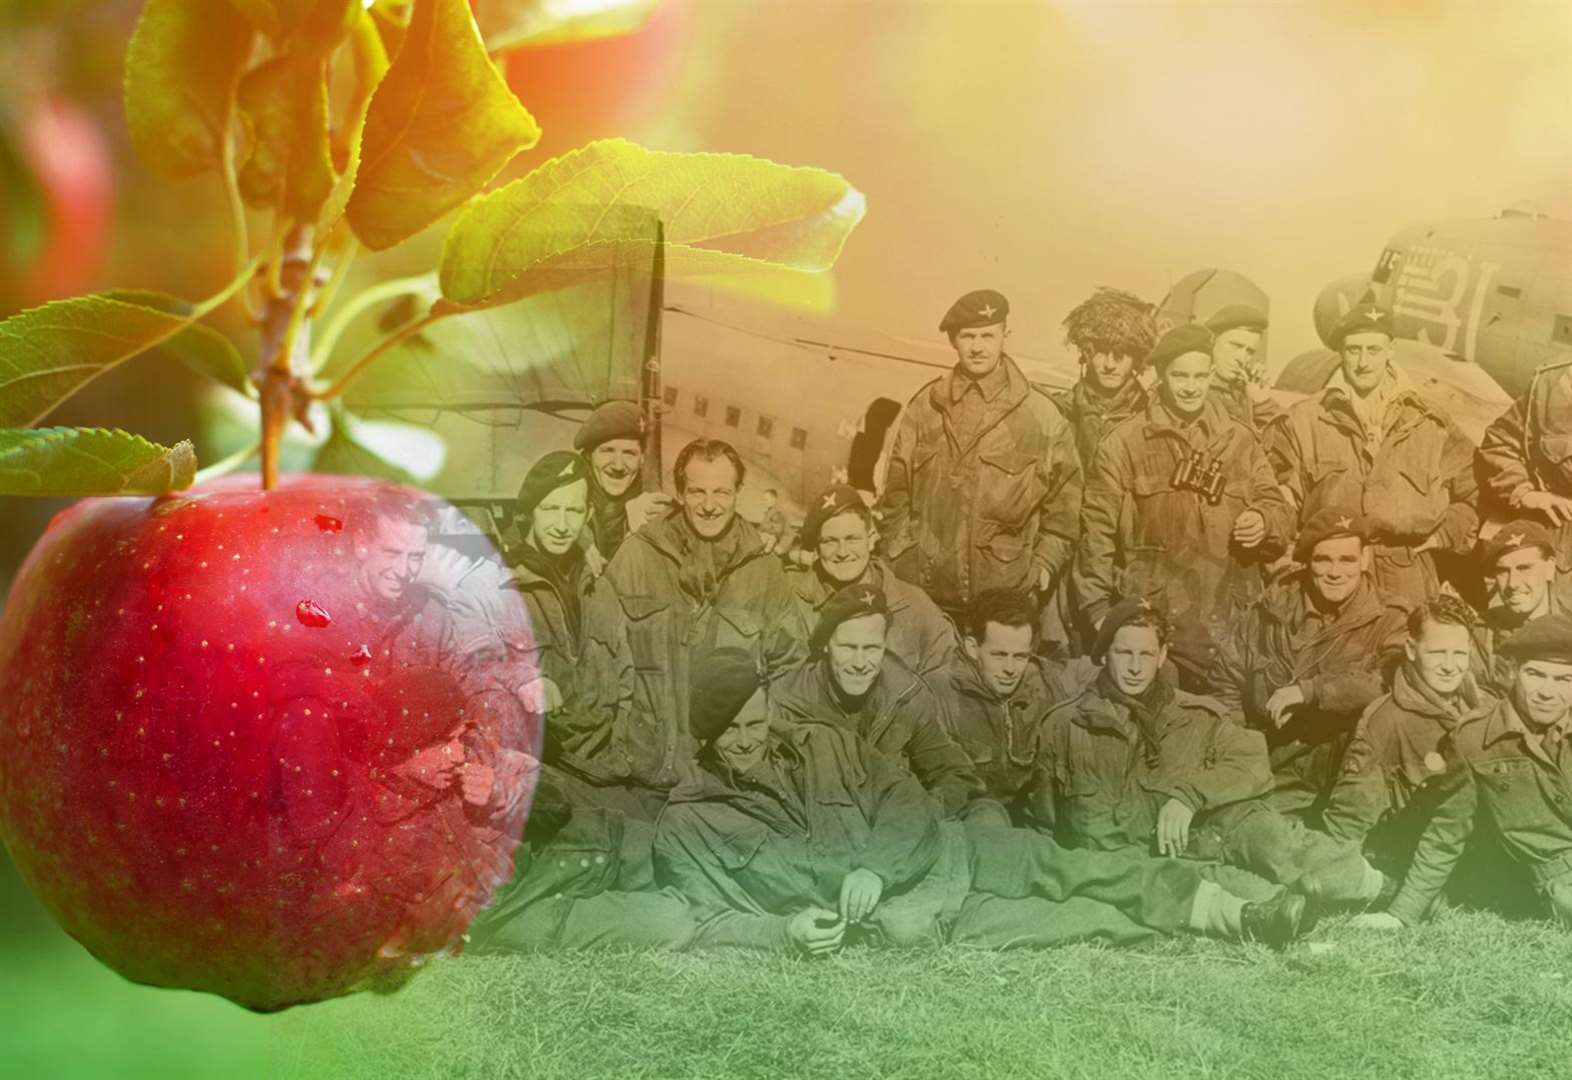 Appeal for Heroes orchard raises three quarters of funds ahead of February deadline